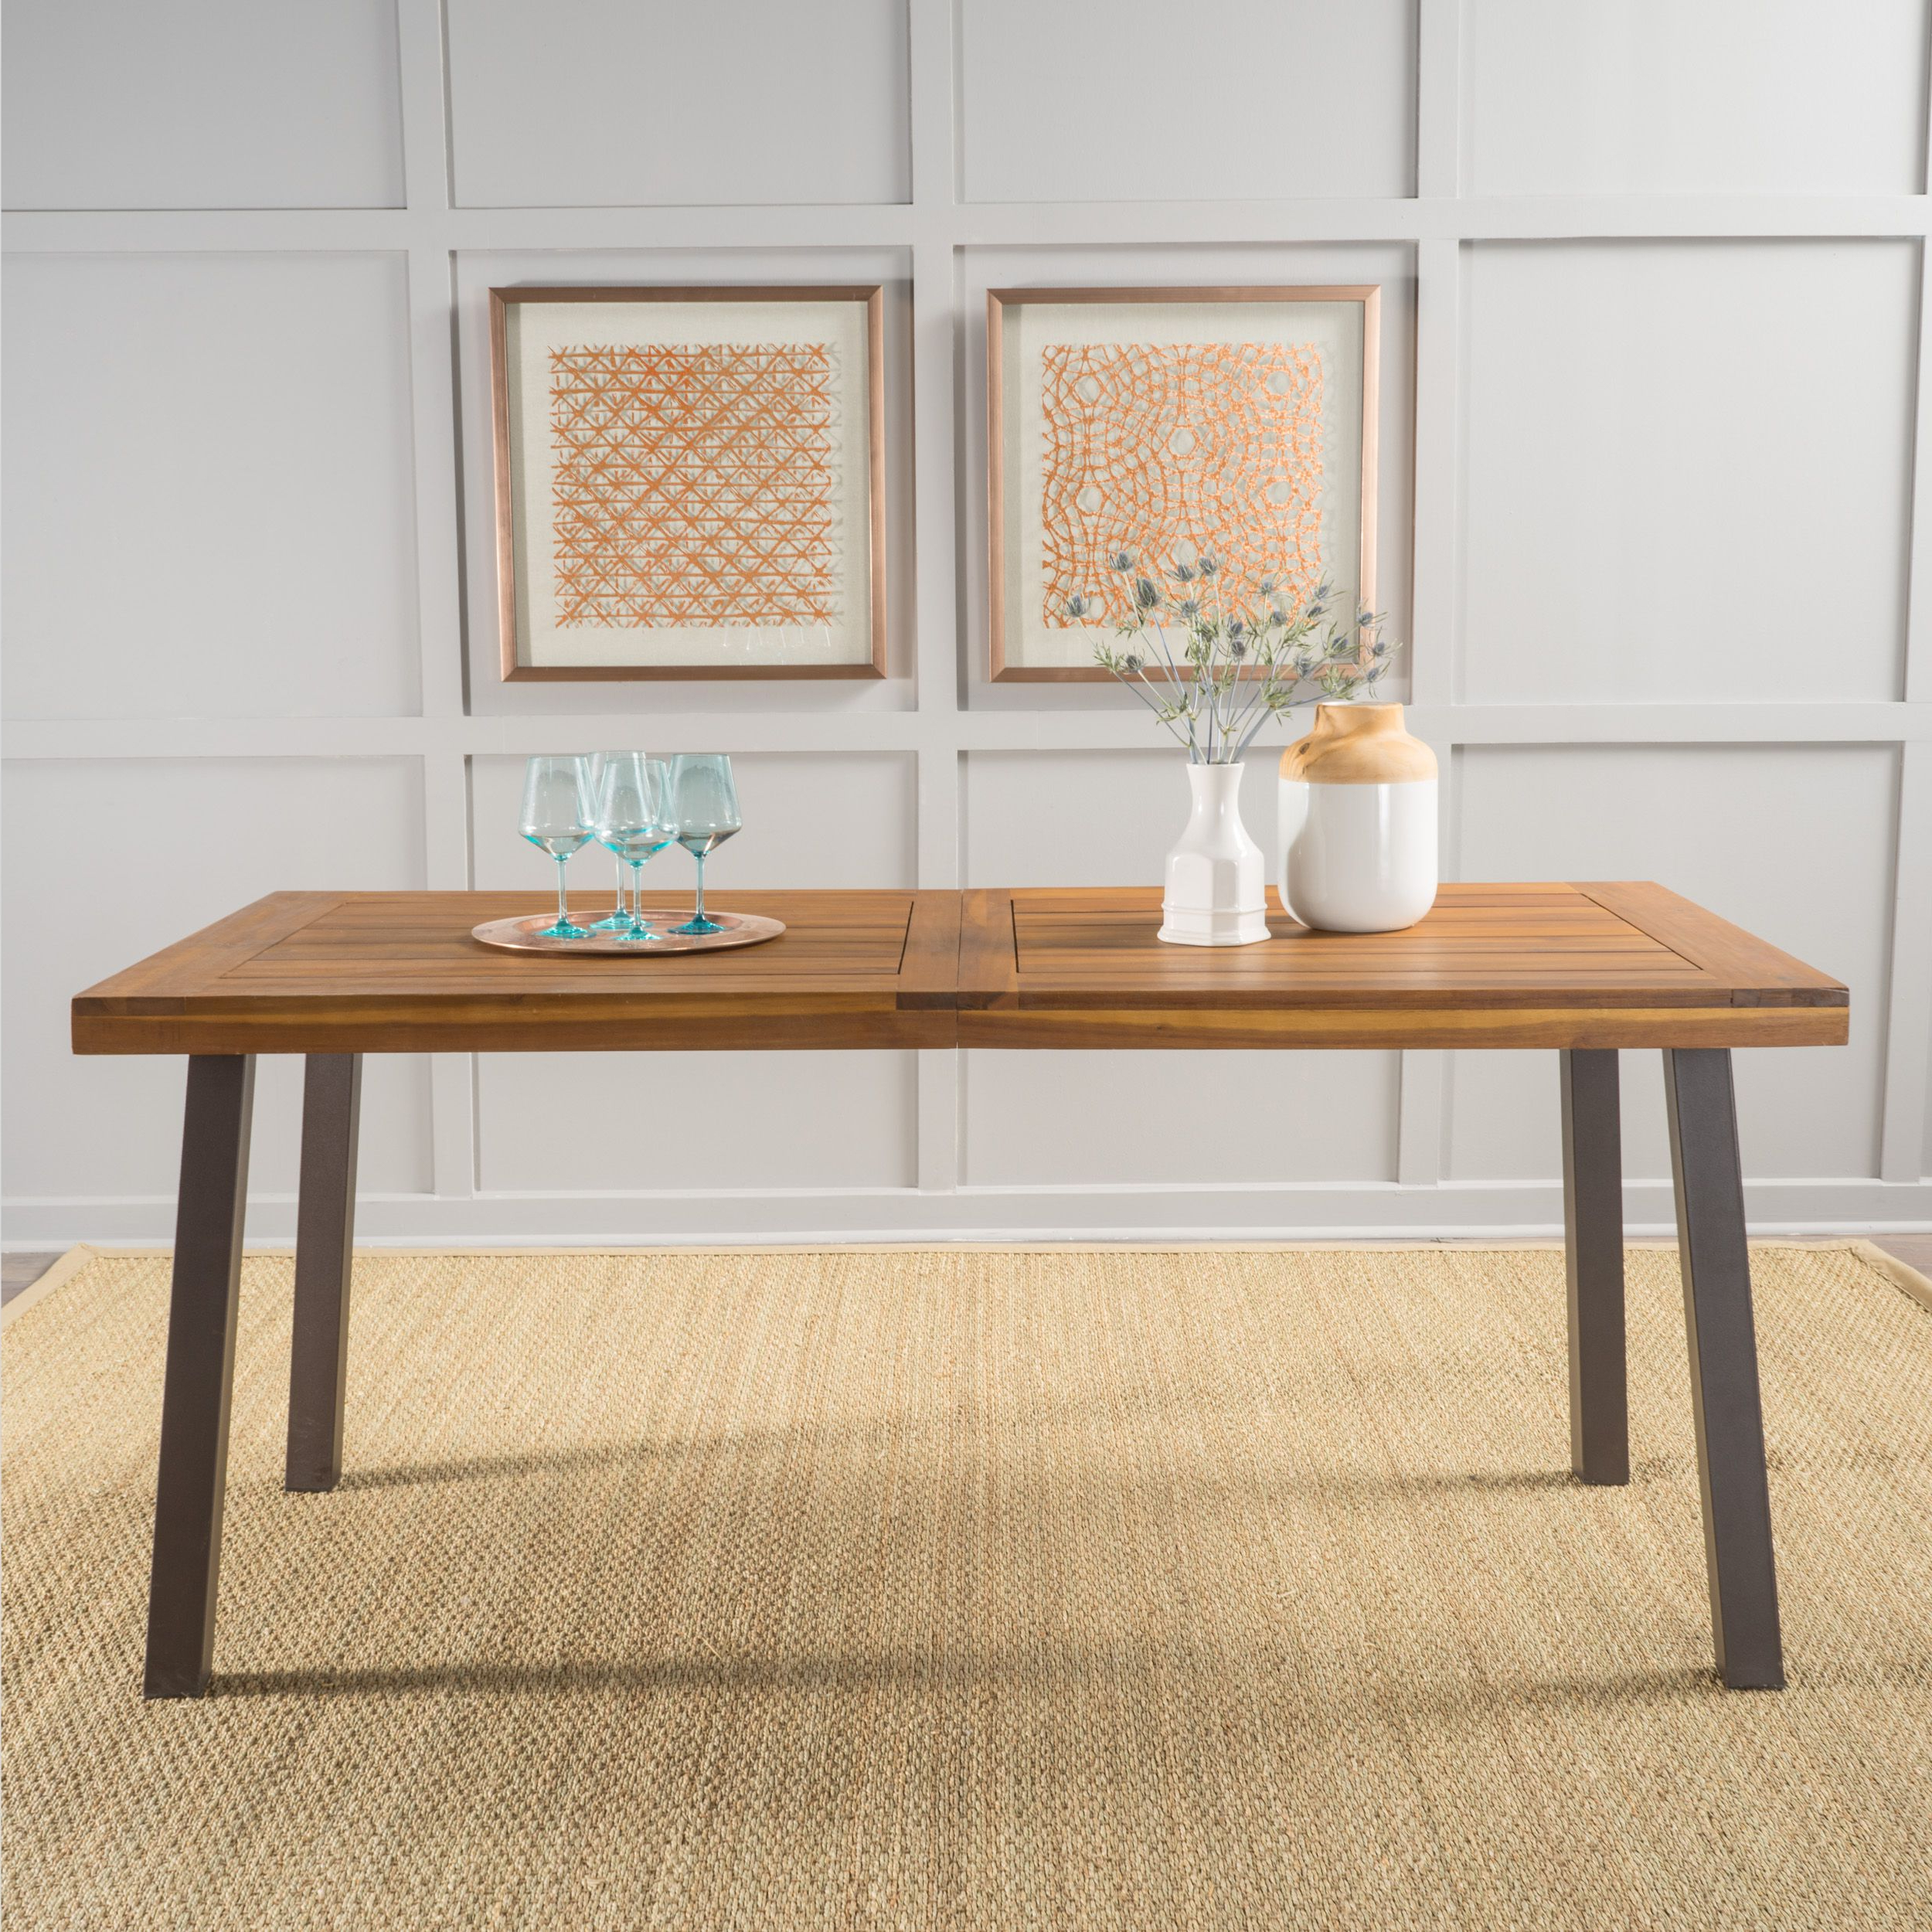 The 8 Best Dining Room Tables At Walmart In 2020 Inside Well Known Mid Century Rectangular Top Dining Tables With Wood Legs (View 27 of 30)